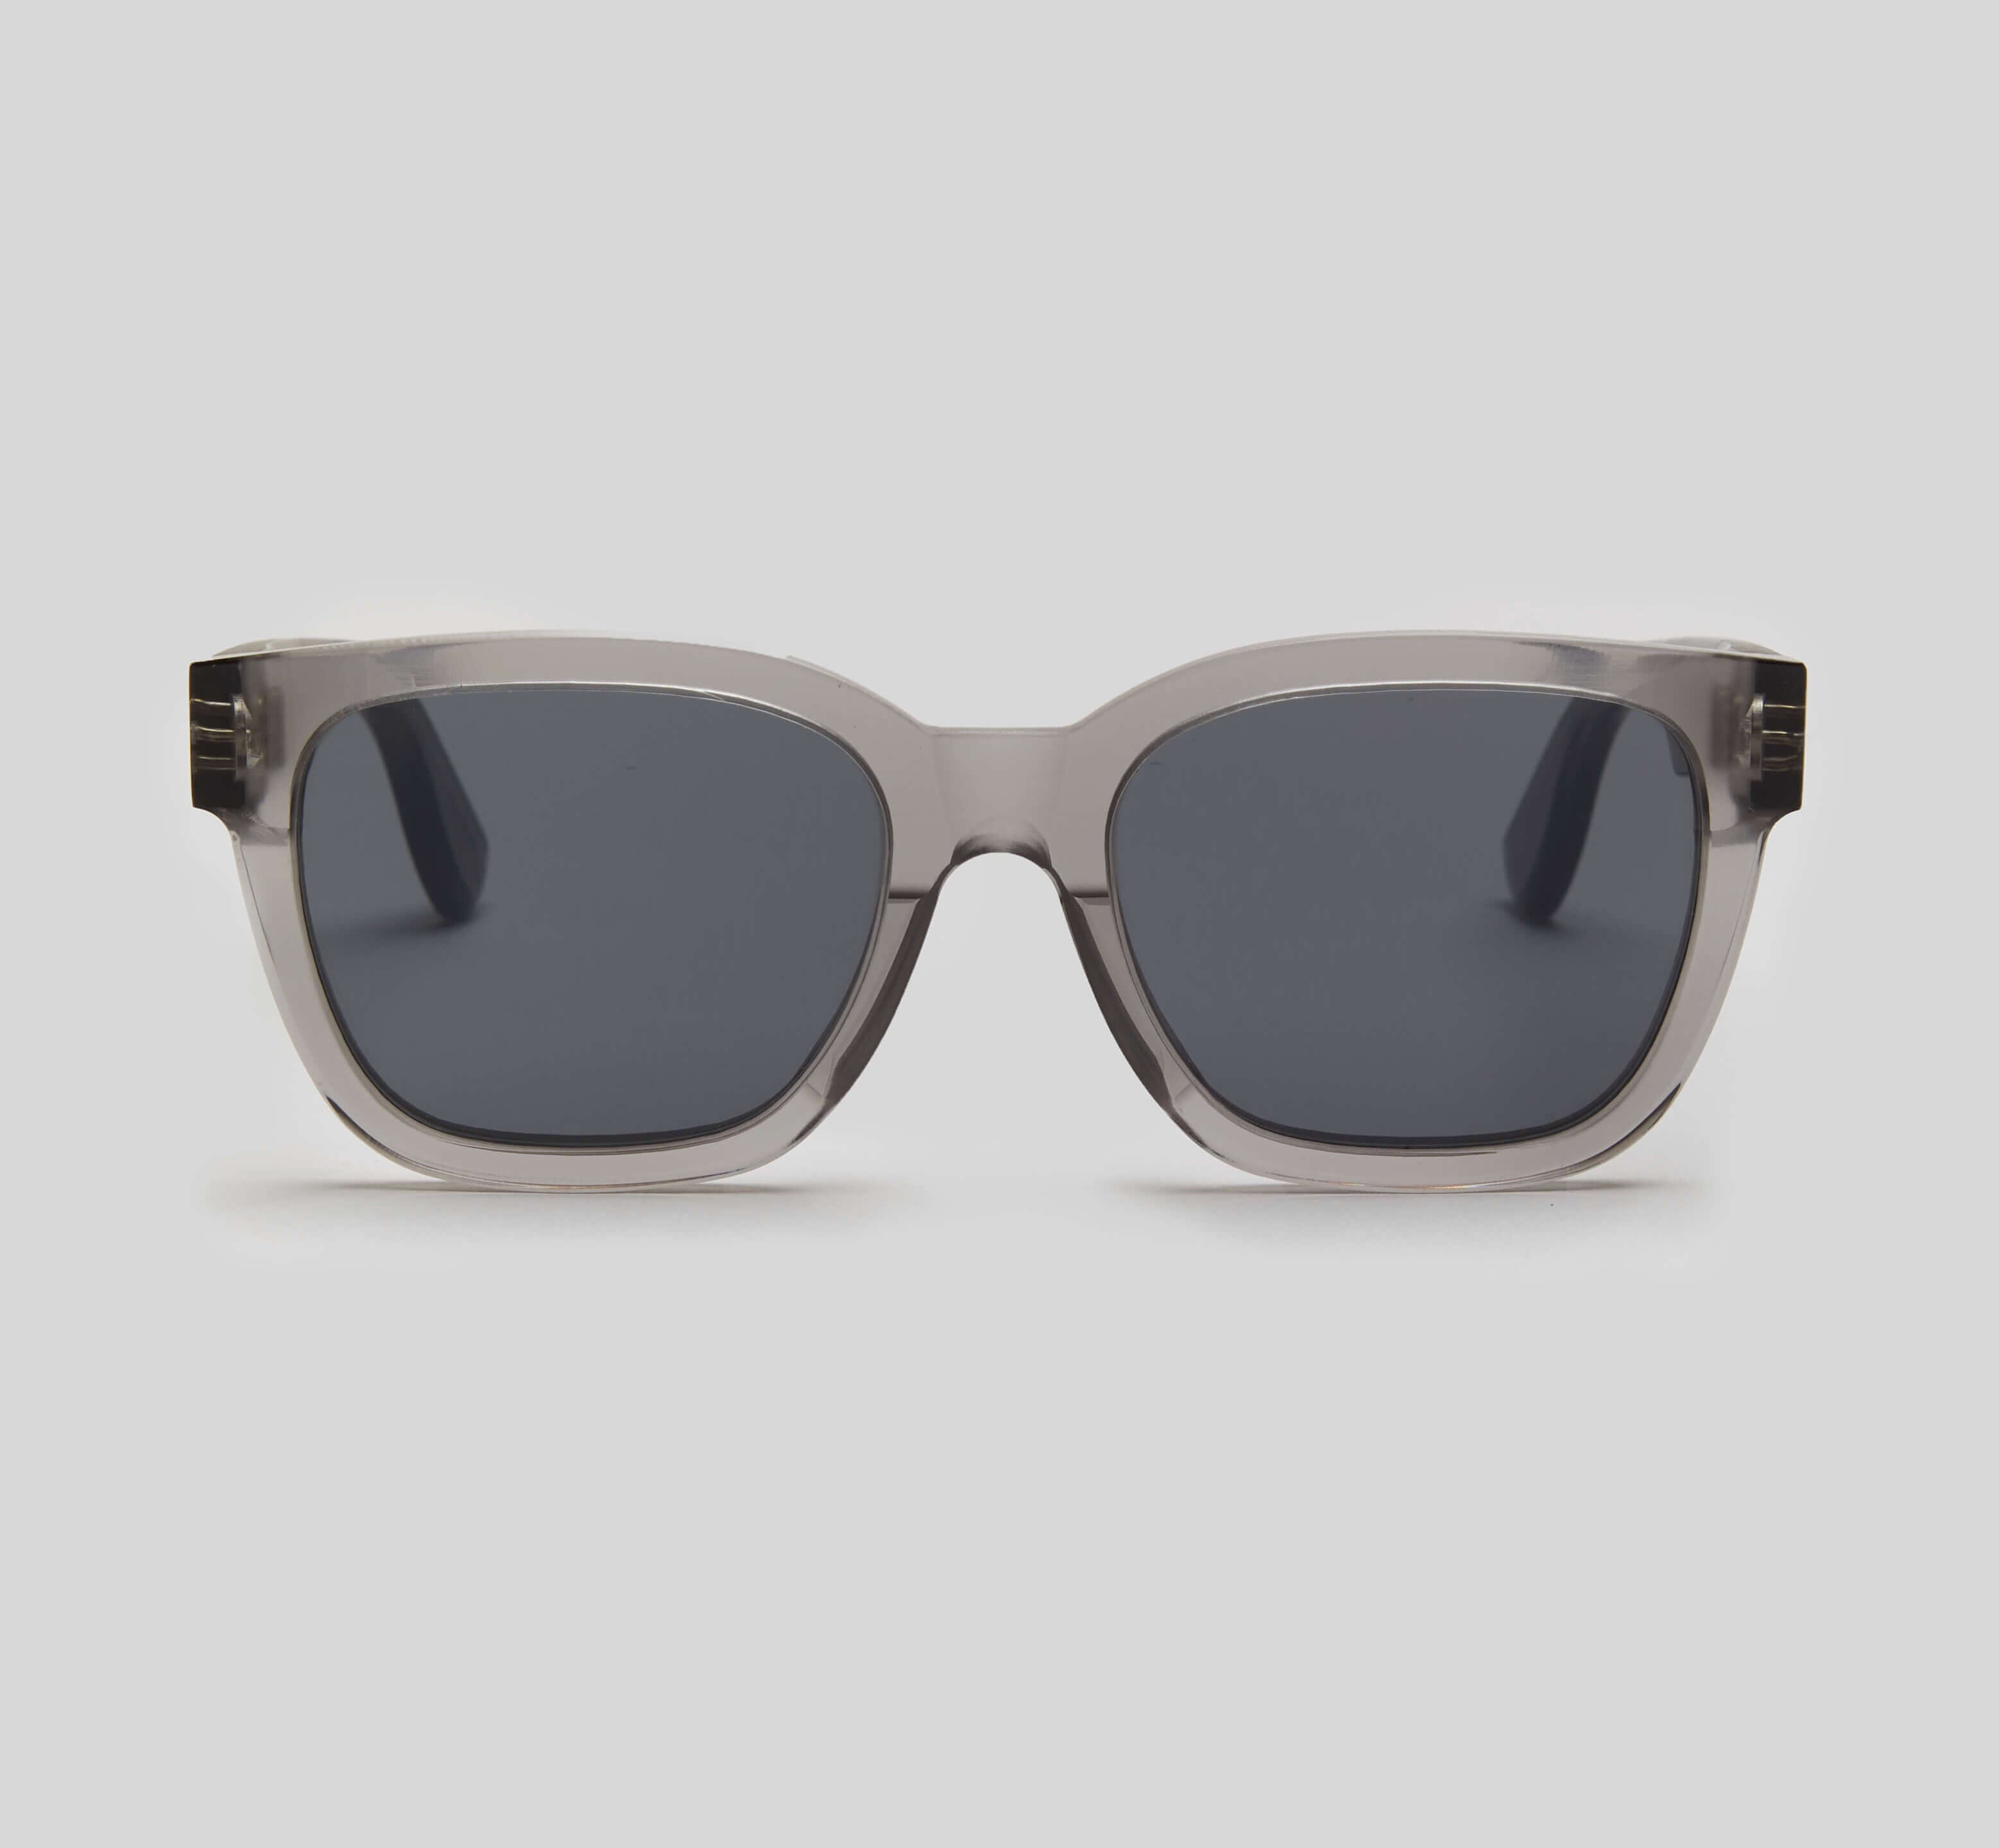 Smoke gray square sunglasses eco friendly sustainable fashion made in Japan unisex sunglasses for men sunglasses for women and blue light filter